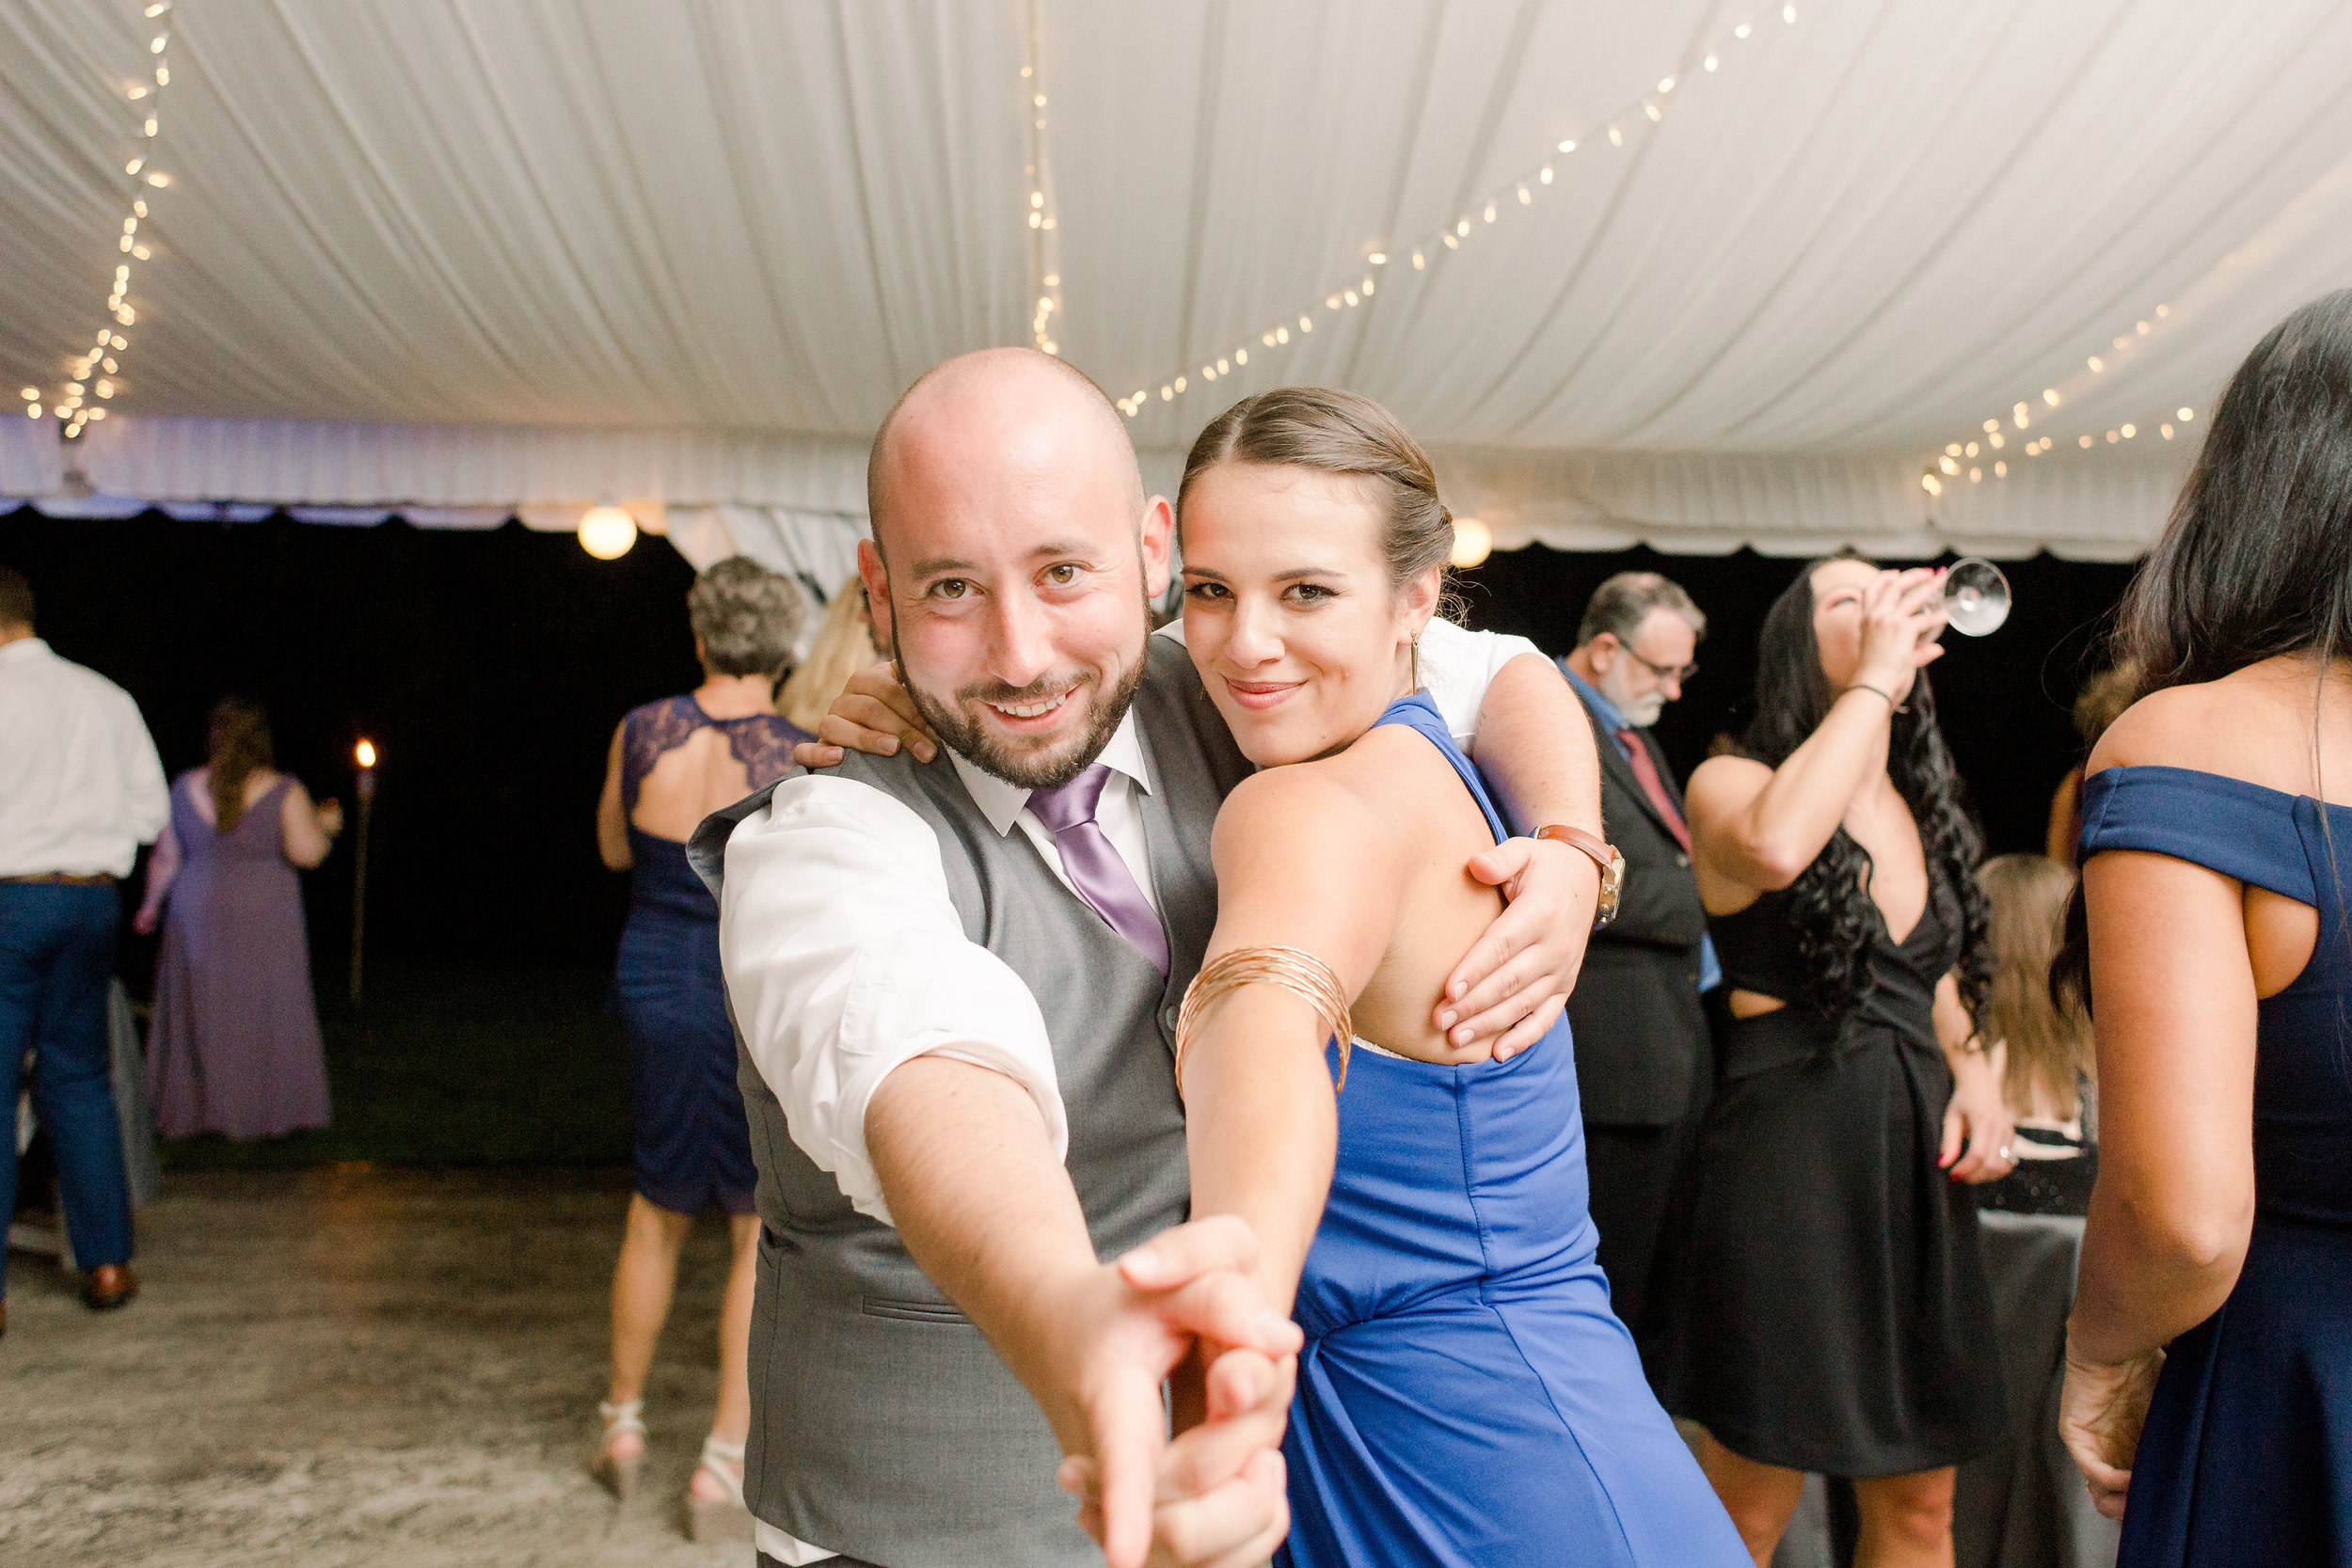 Wedding DJ Services in Lancaster, PA